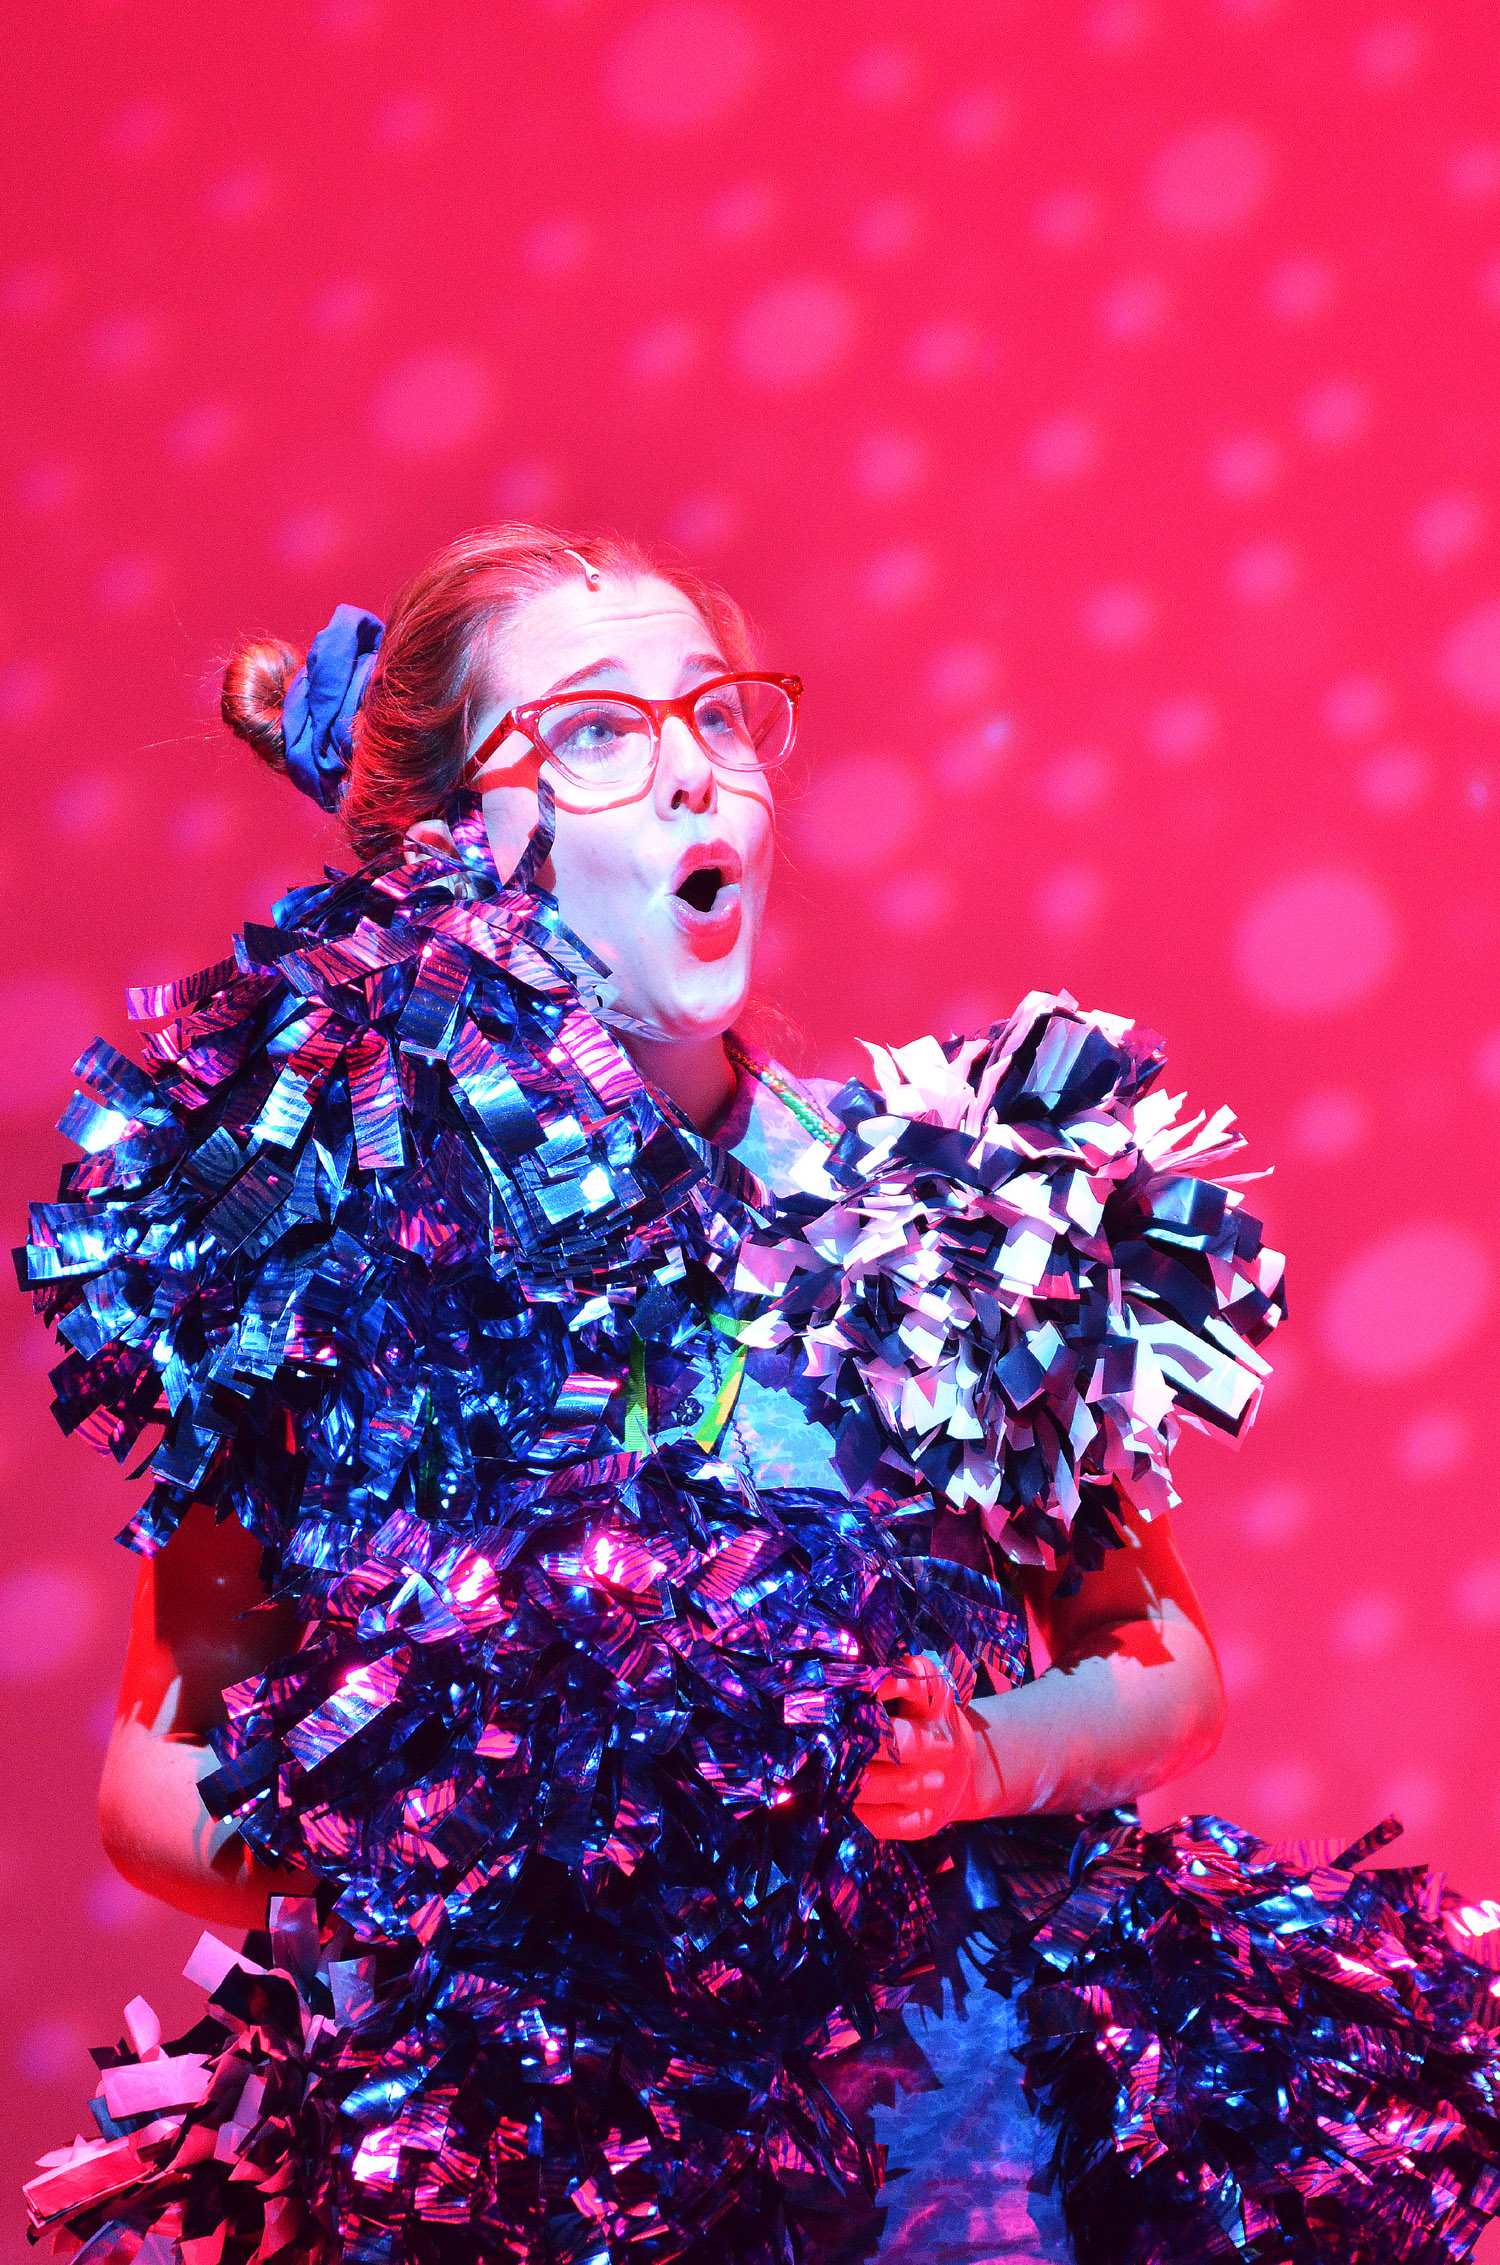 Sydney Patrick (Gertrude) in the SU Drama production of Seussical.